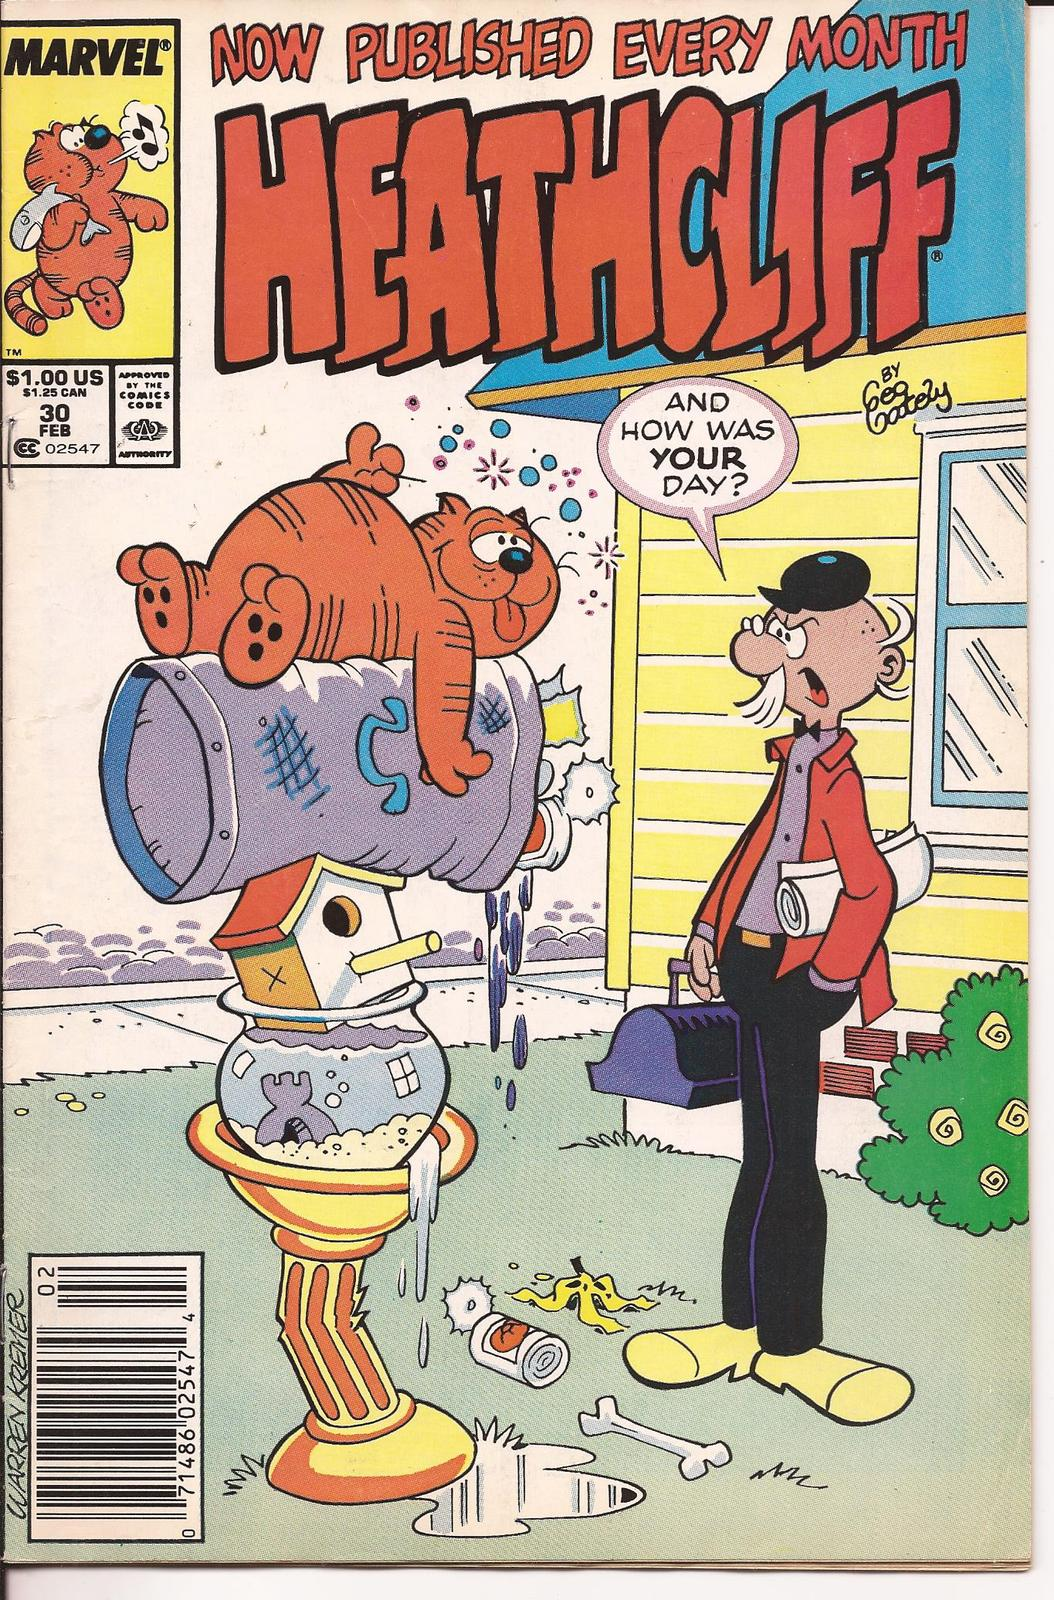 Marvel Heathcliff Lot Issues #1 & 30 Mystery Of The Wax Museum Cap Napping Caper